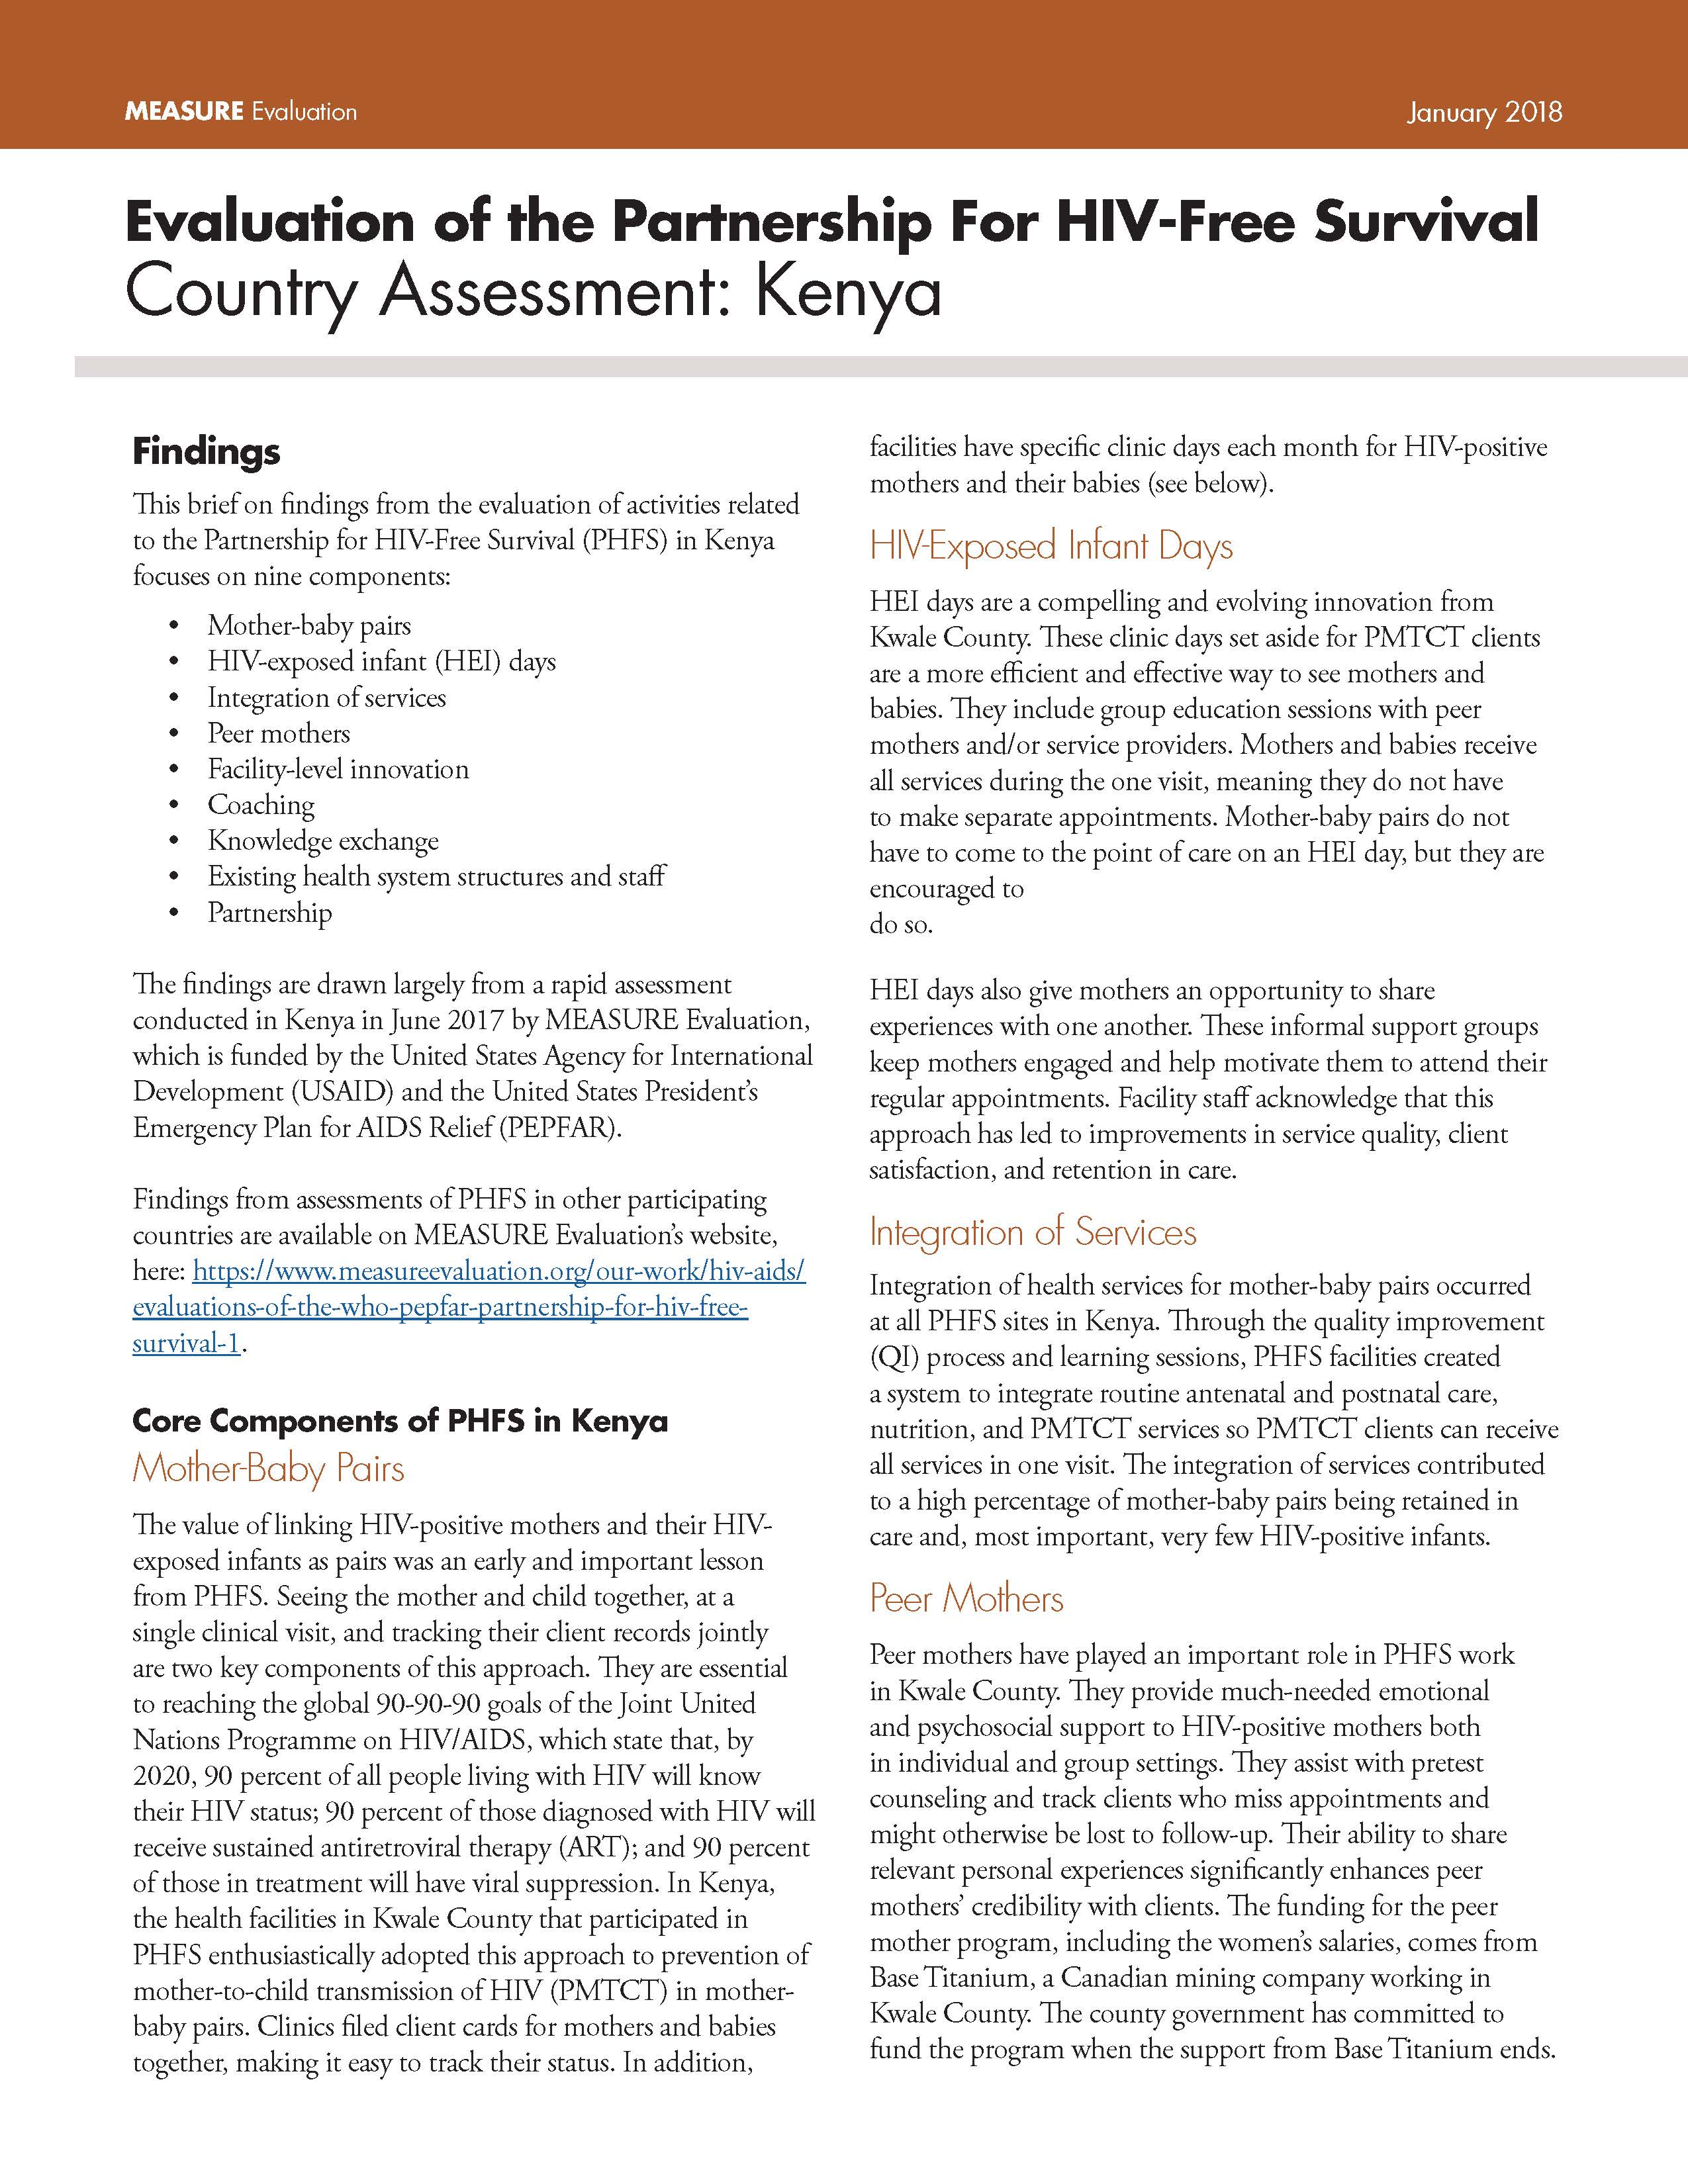 Evaluation of the Partnership For HIV-Free Survival Country Assessment: Kenya